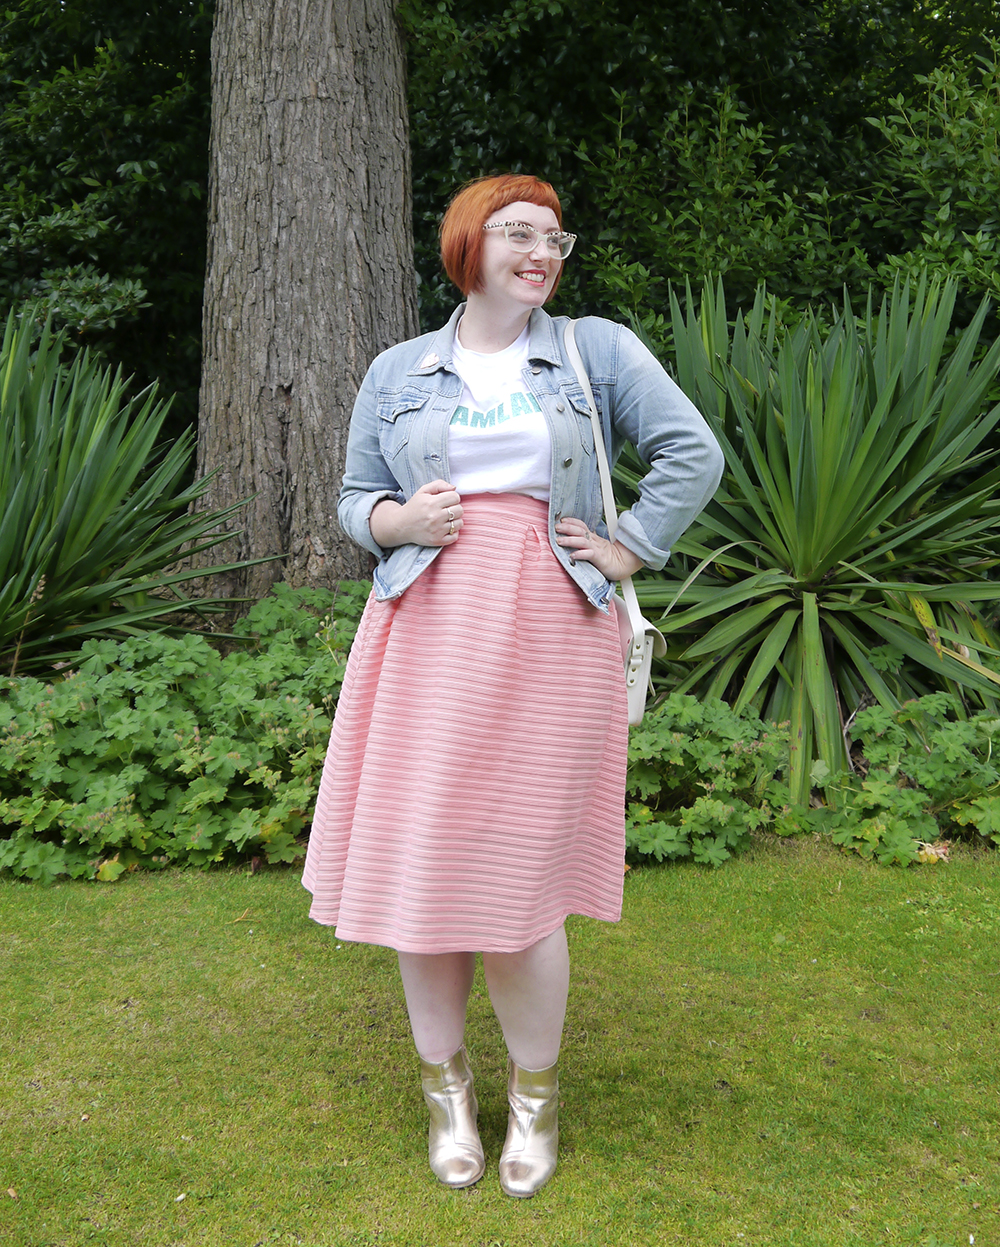 Fashion blogger Helen from Wardrobe Conversations wears a candy coloured outfit